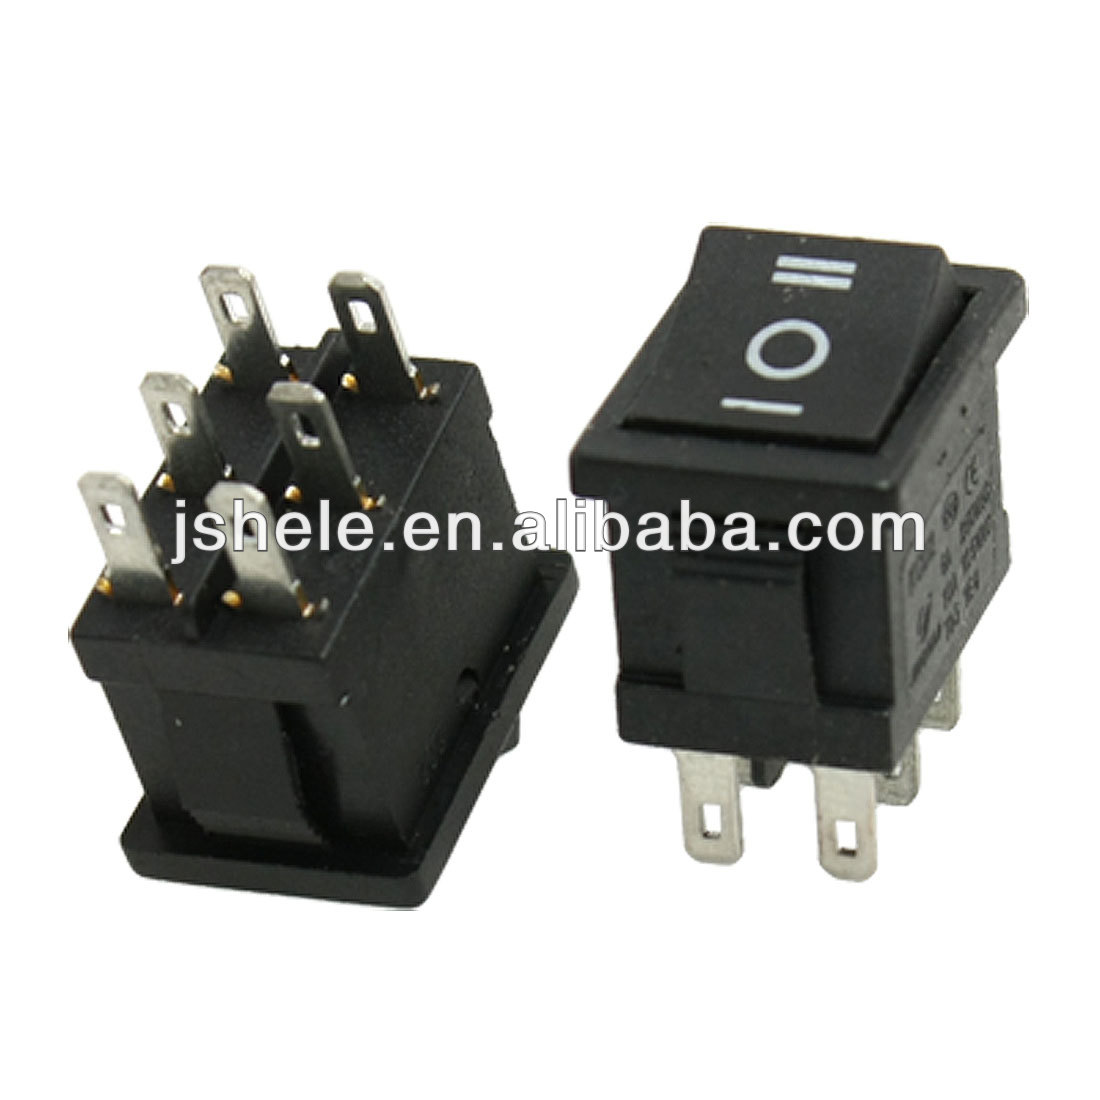 AC 250V/6A 125V/10A DPDT on/off/on 3 Position Rocker Switch 6 Solder Lug Pin